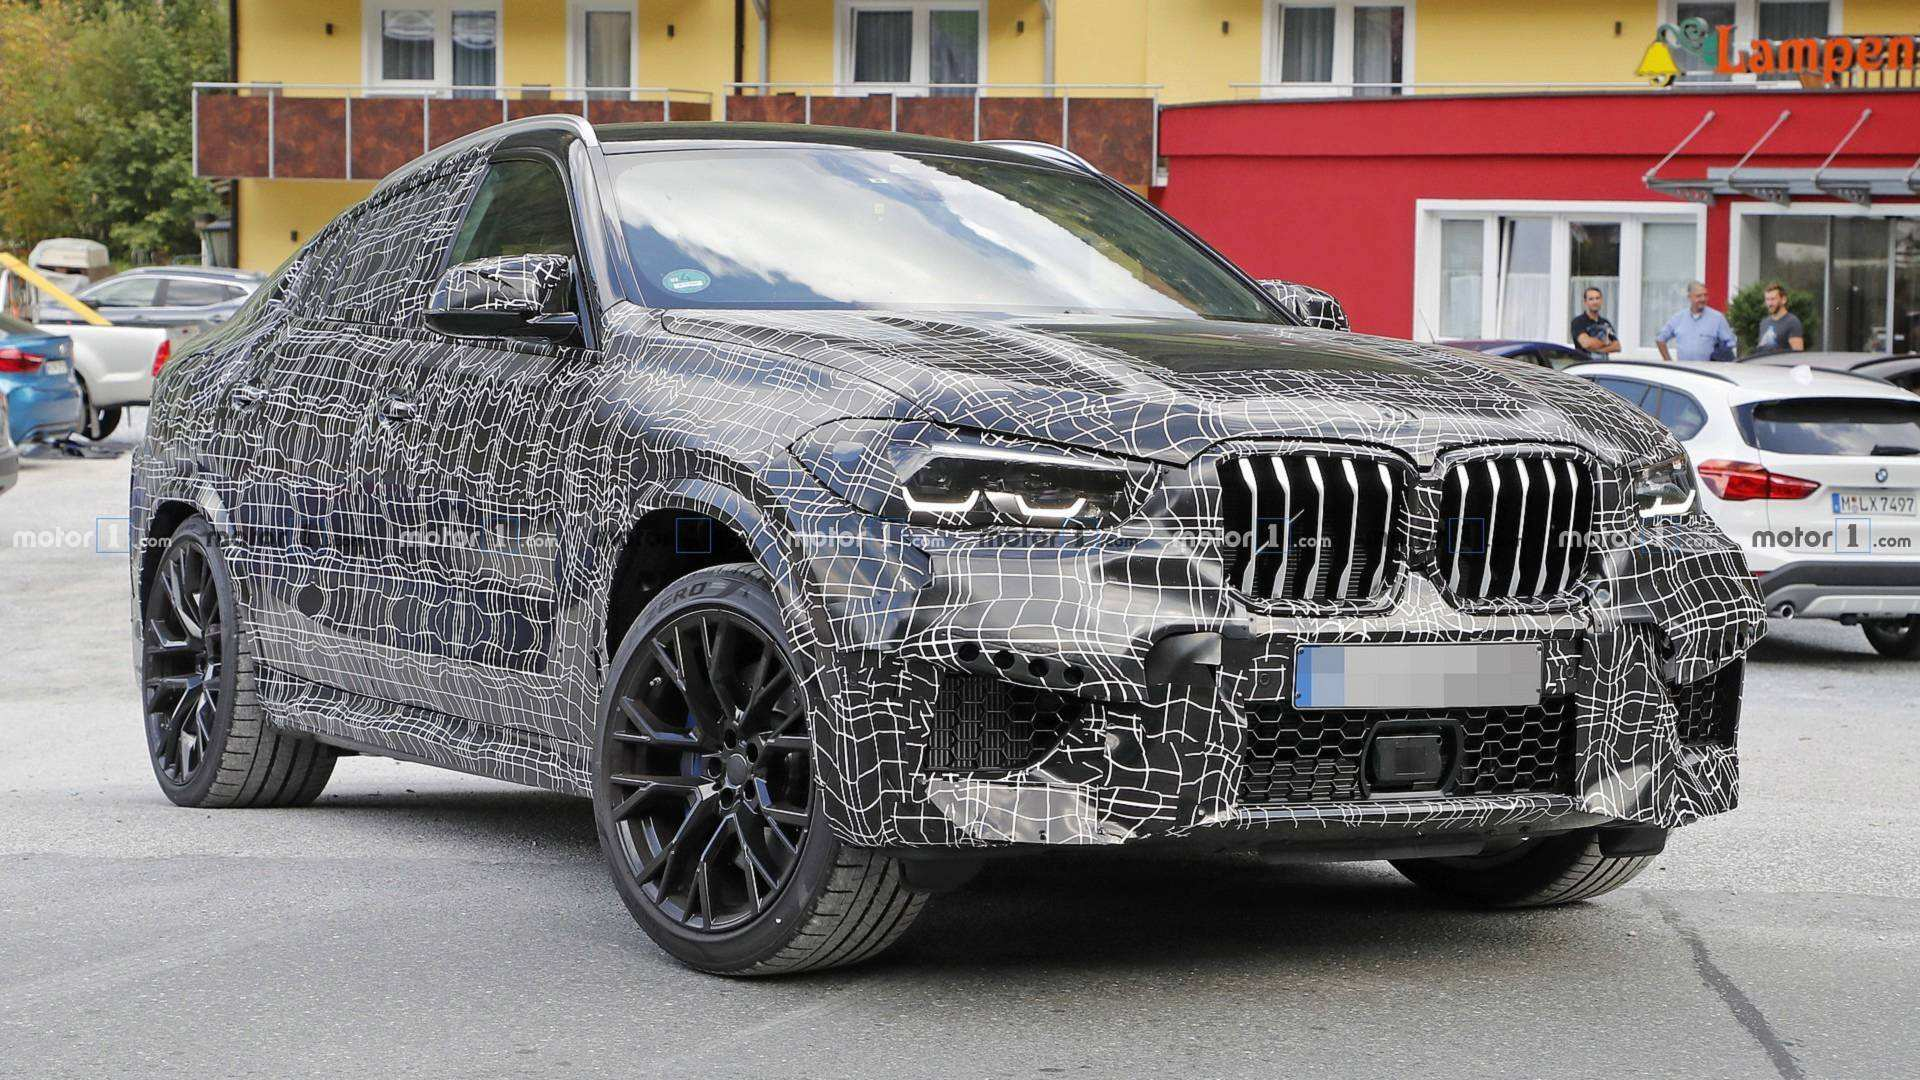 71 New 2020 BMW X6 2020 Reviews for 2020 BMW X6 2020